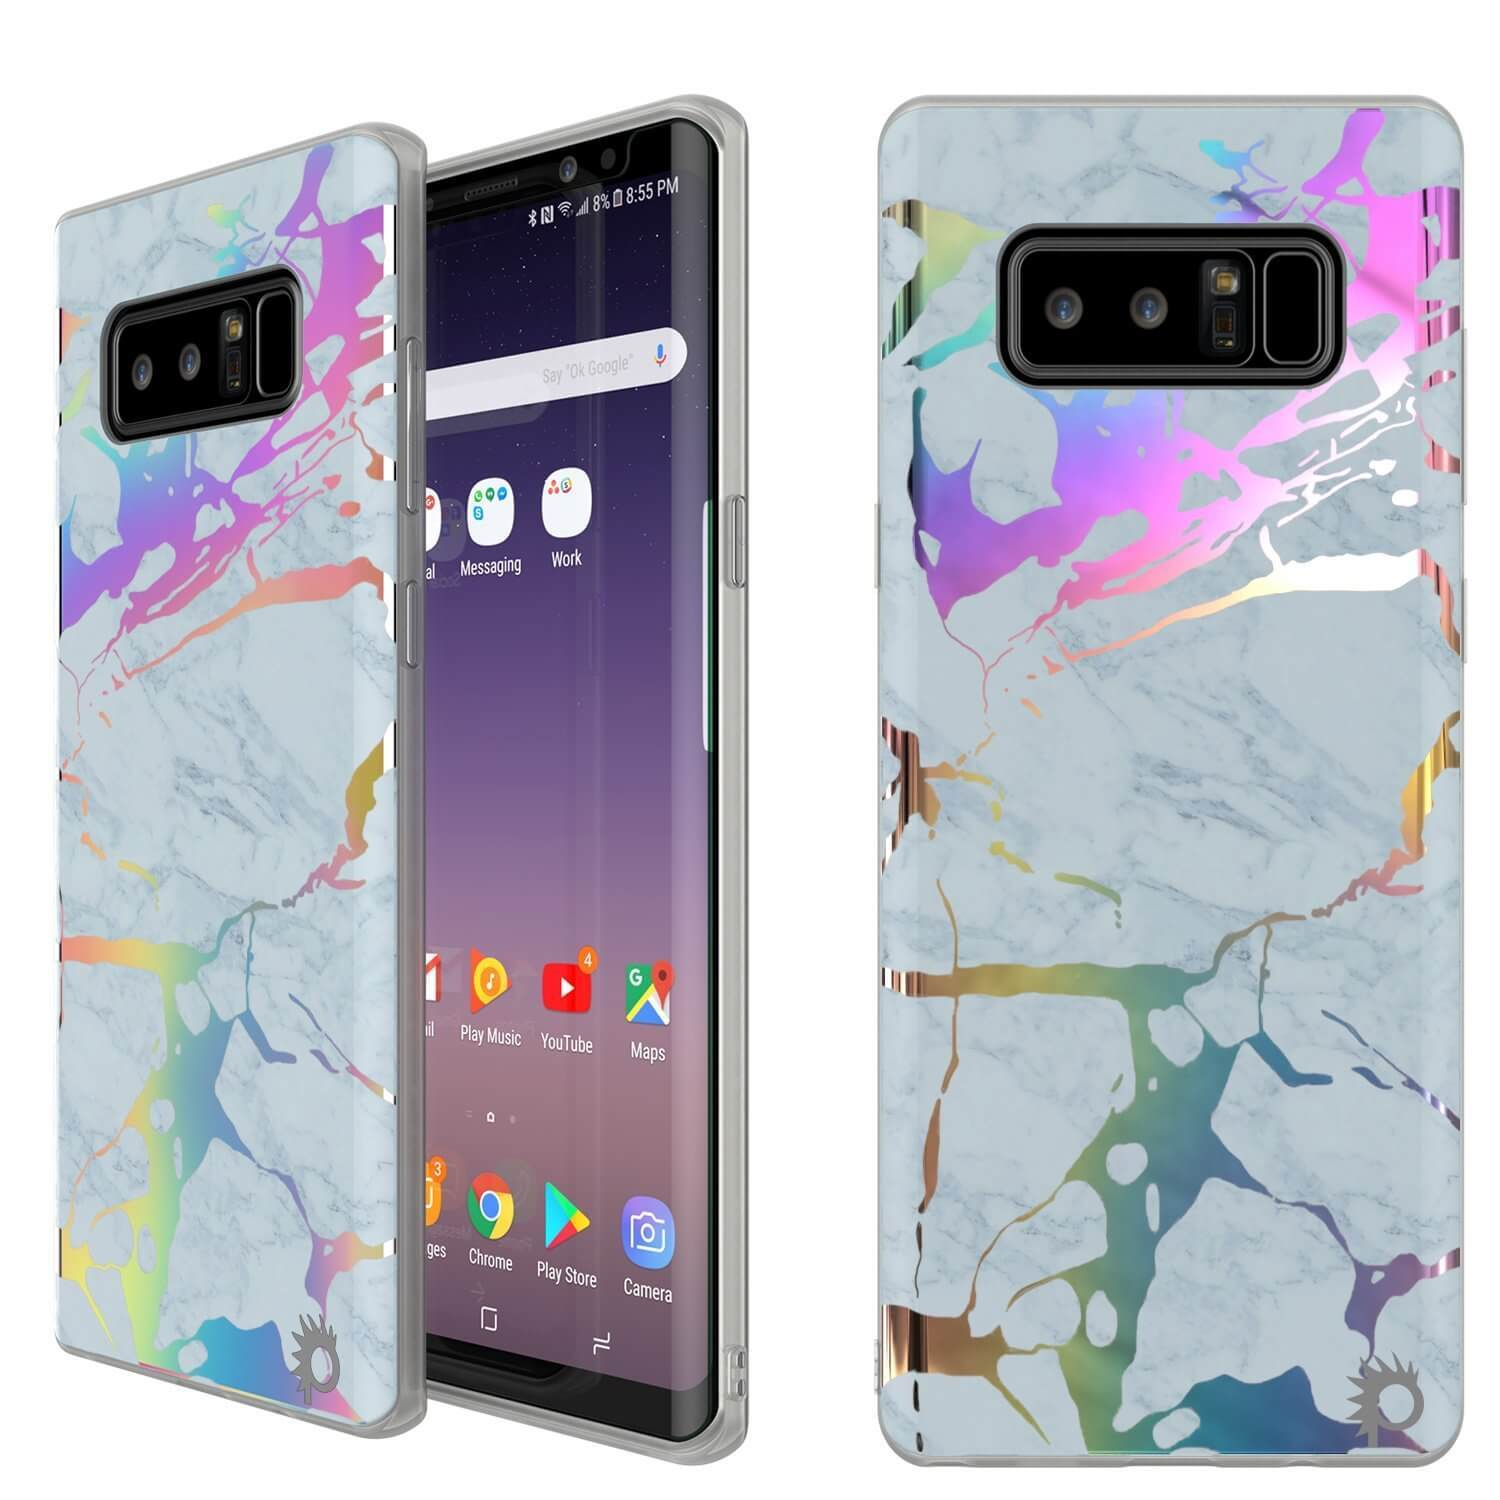 Galaxy Note 8 Marble Case, Protective Full Body Cover [BLUE MARMO]